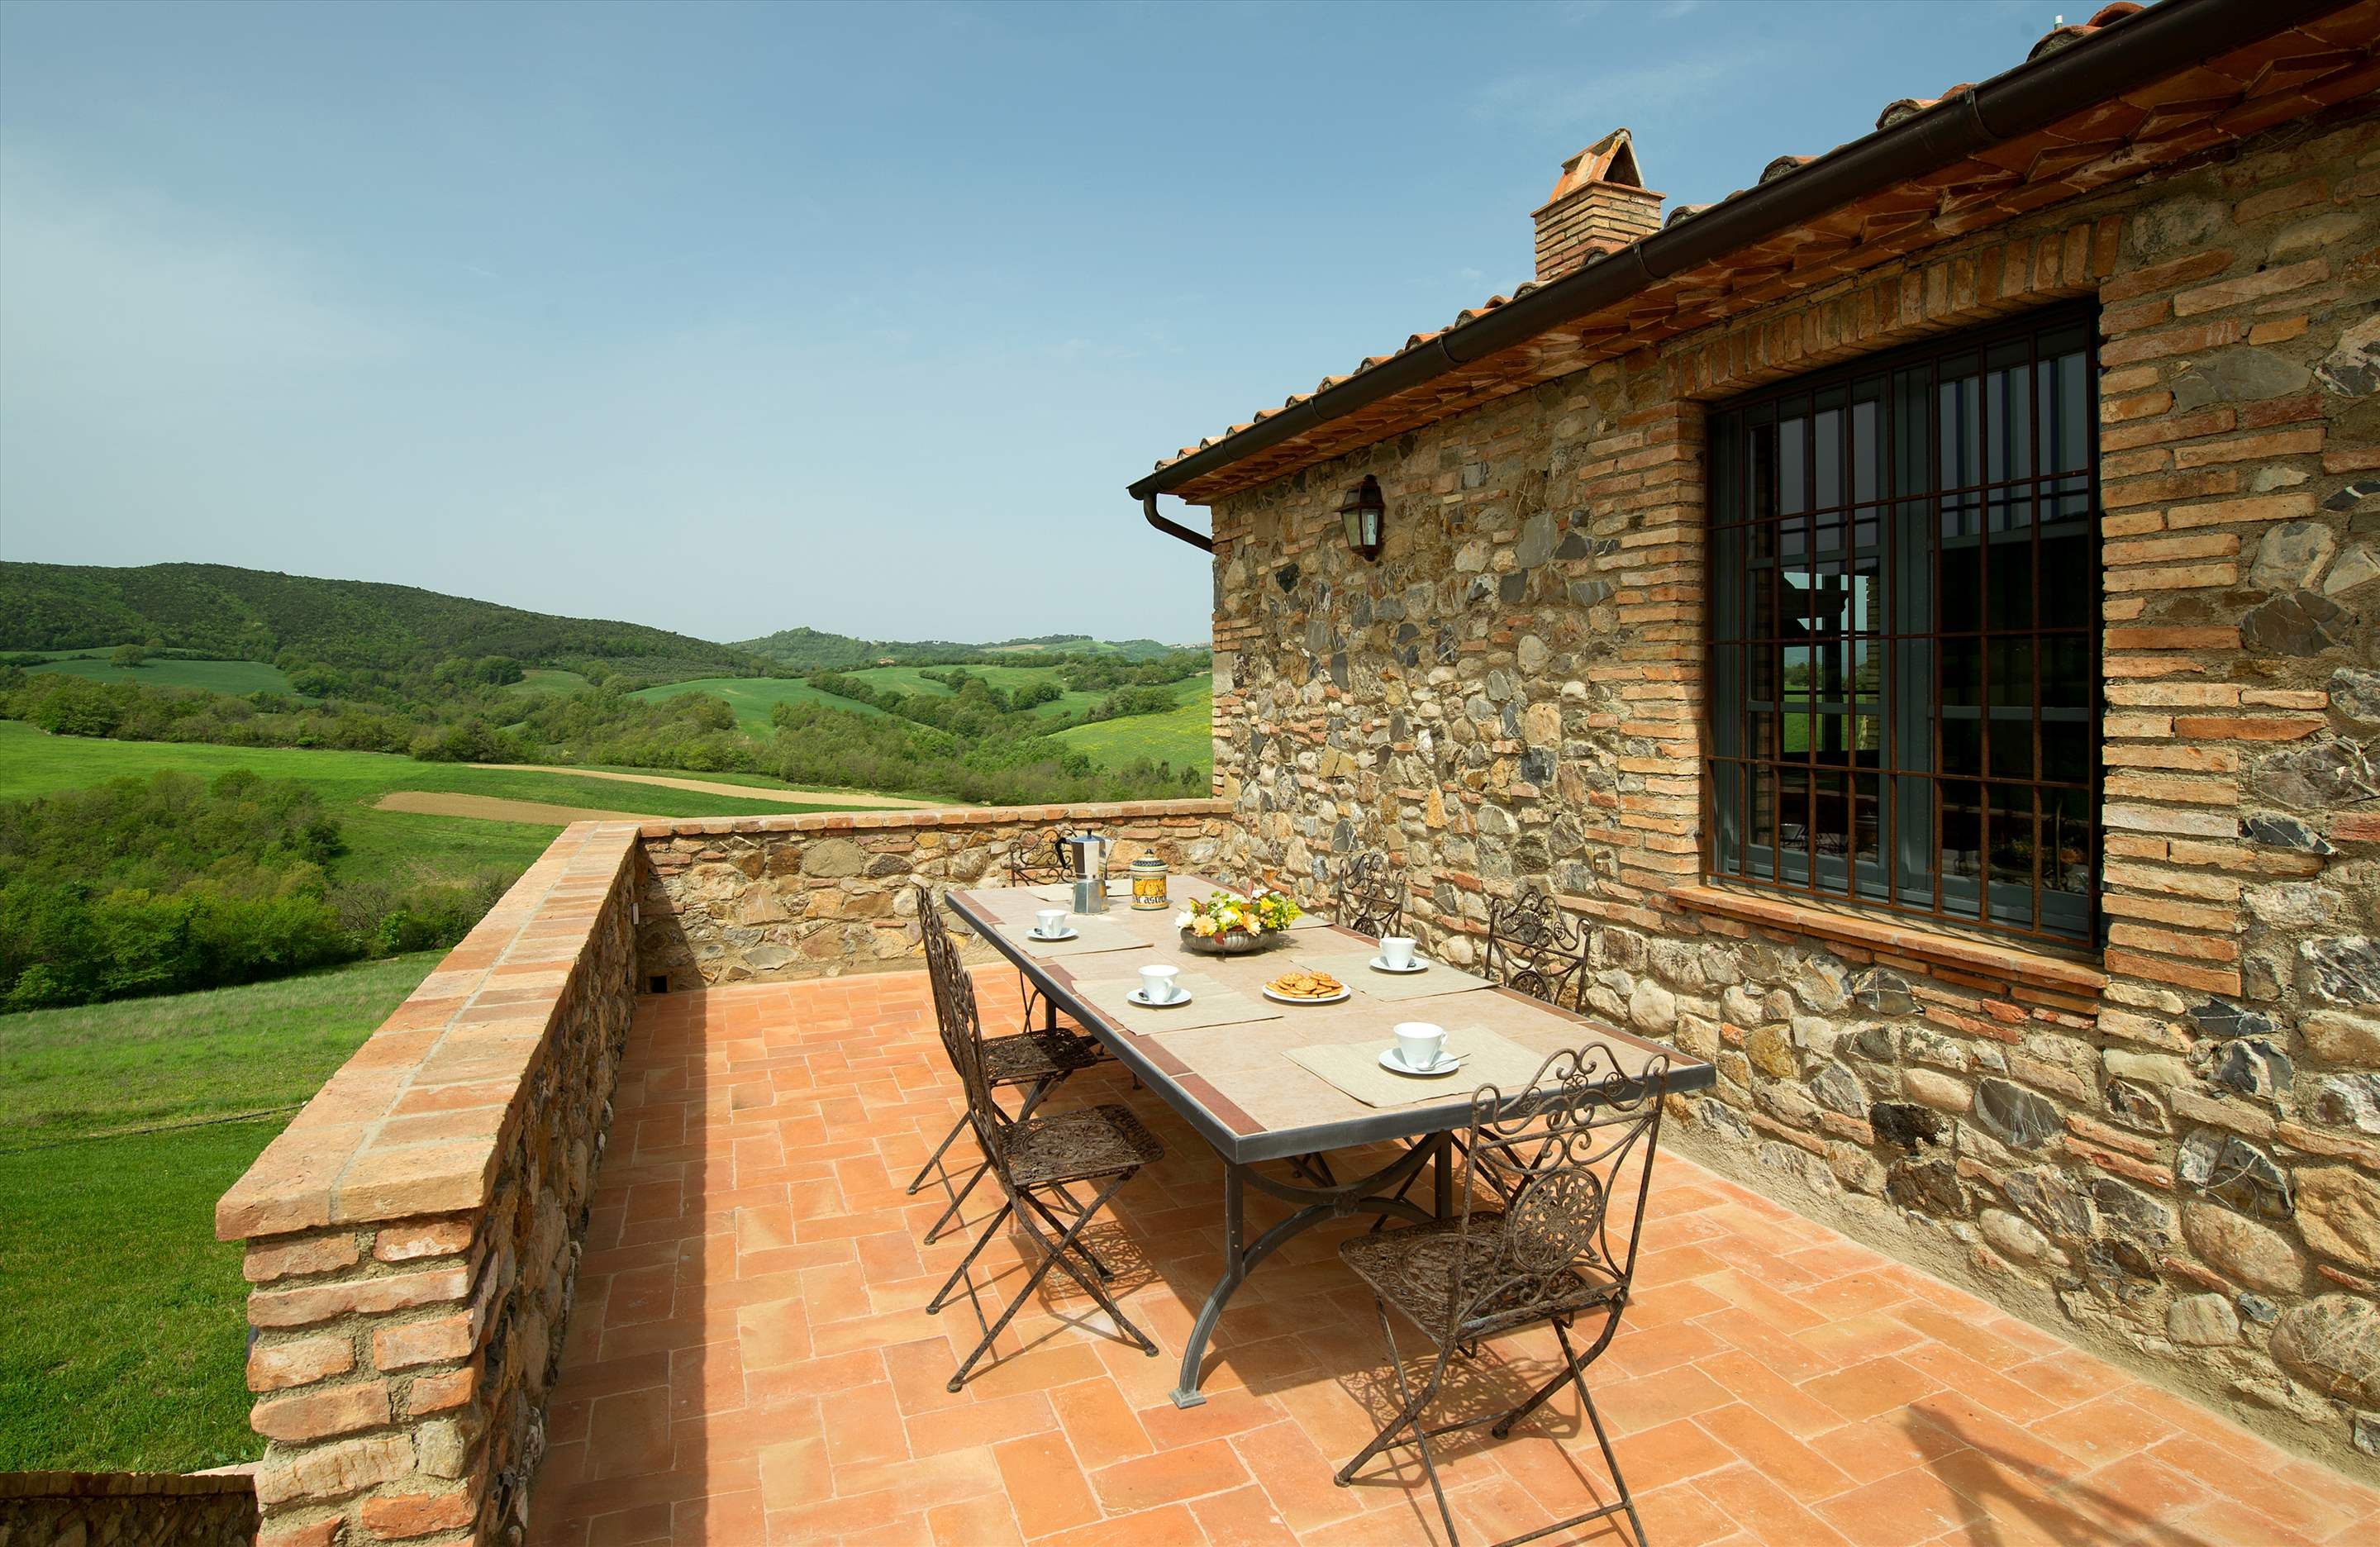 Podere Di Collina, Villa & Apts, 8 bedroom villa in Tuscany Coast, Tuscany Photo #3